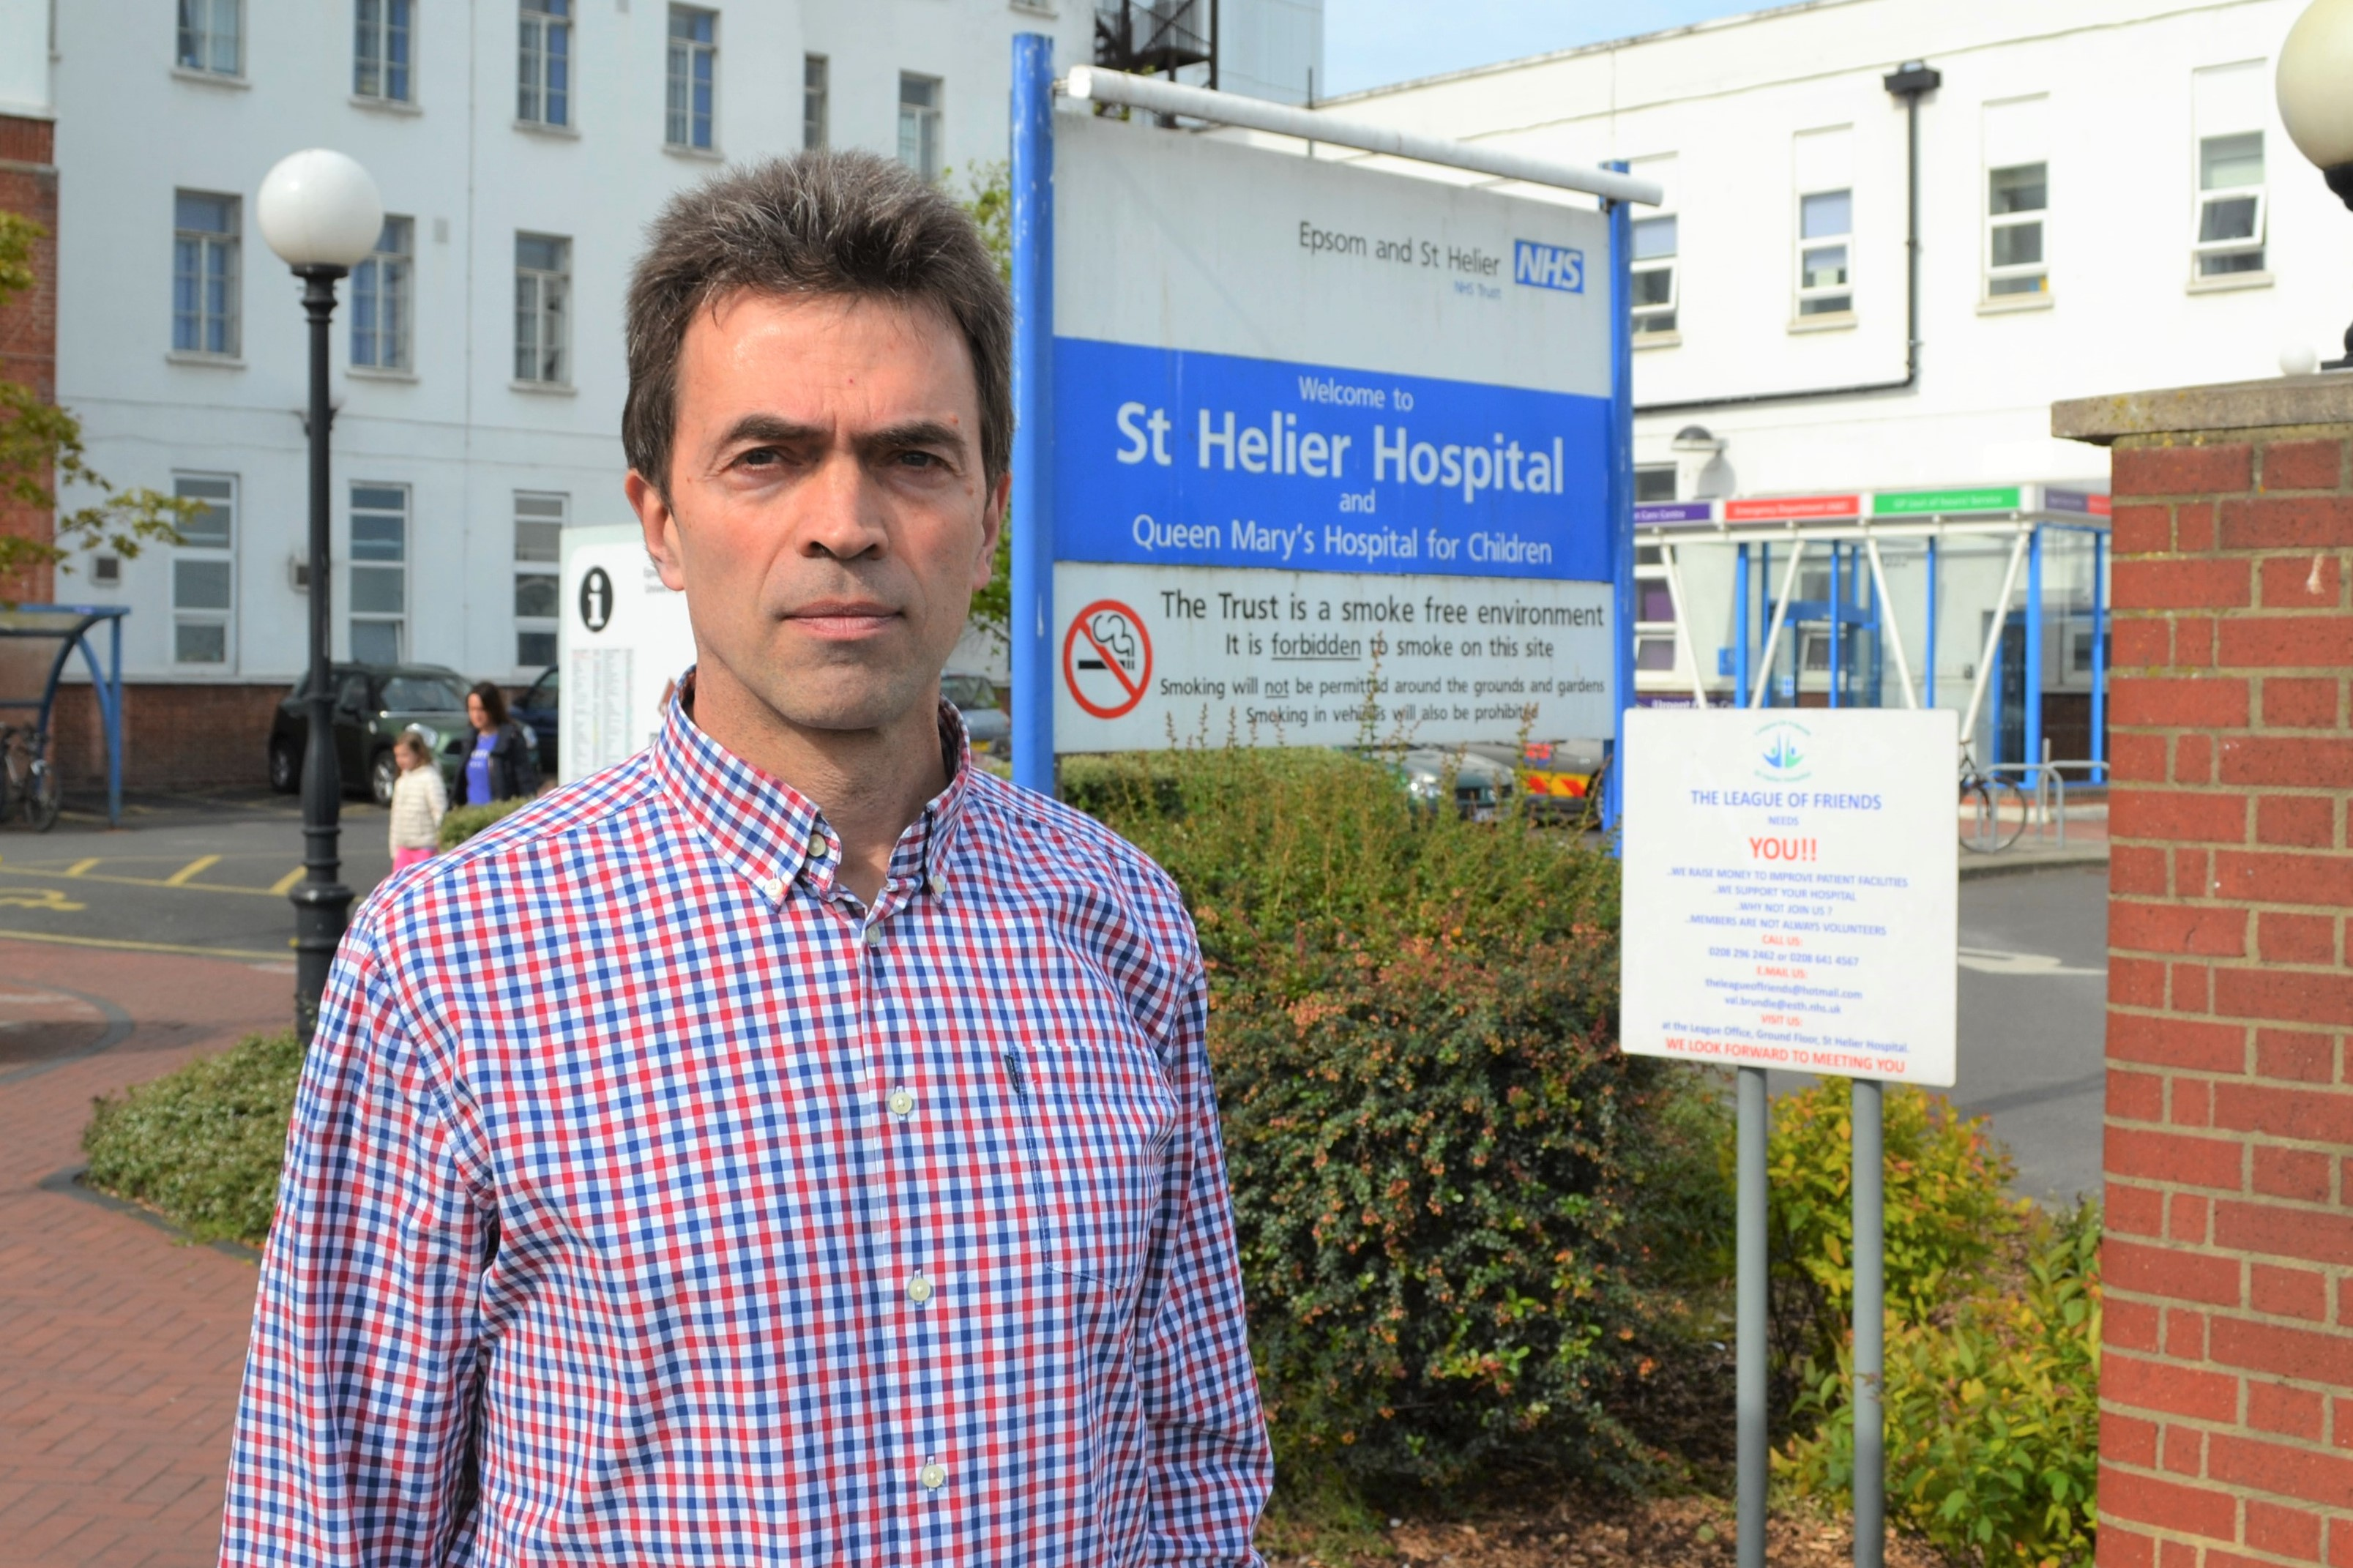 Conservatives ignore St Helier in spending spree